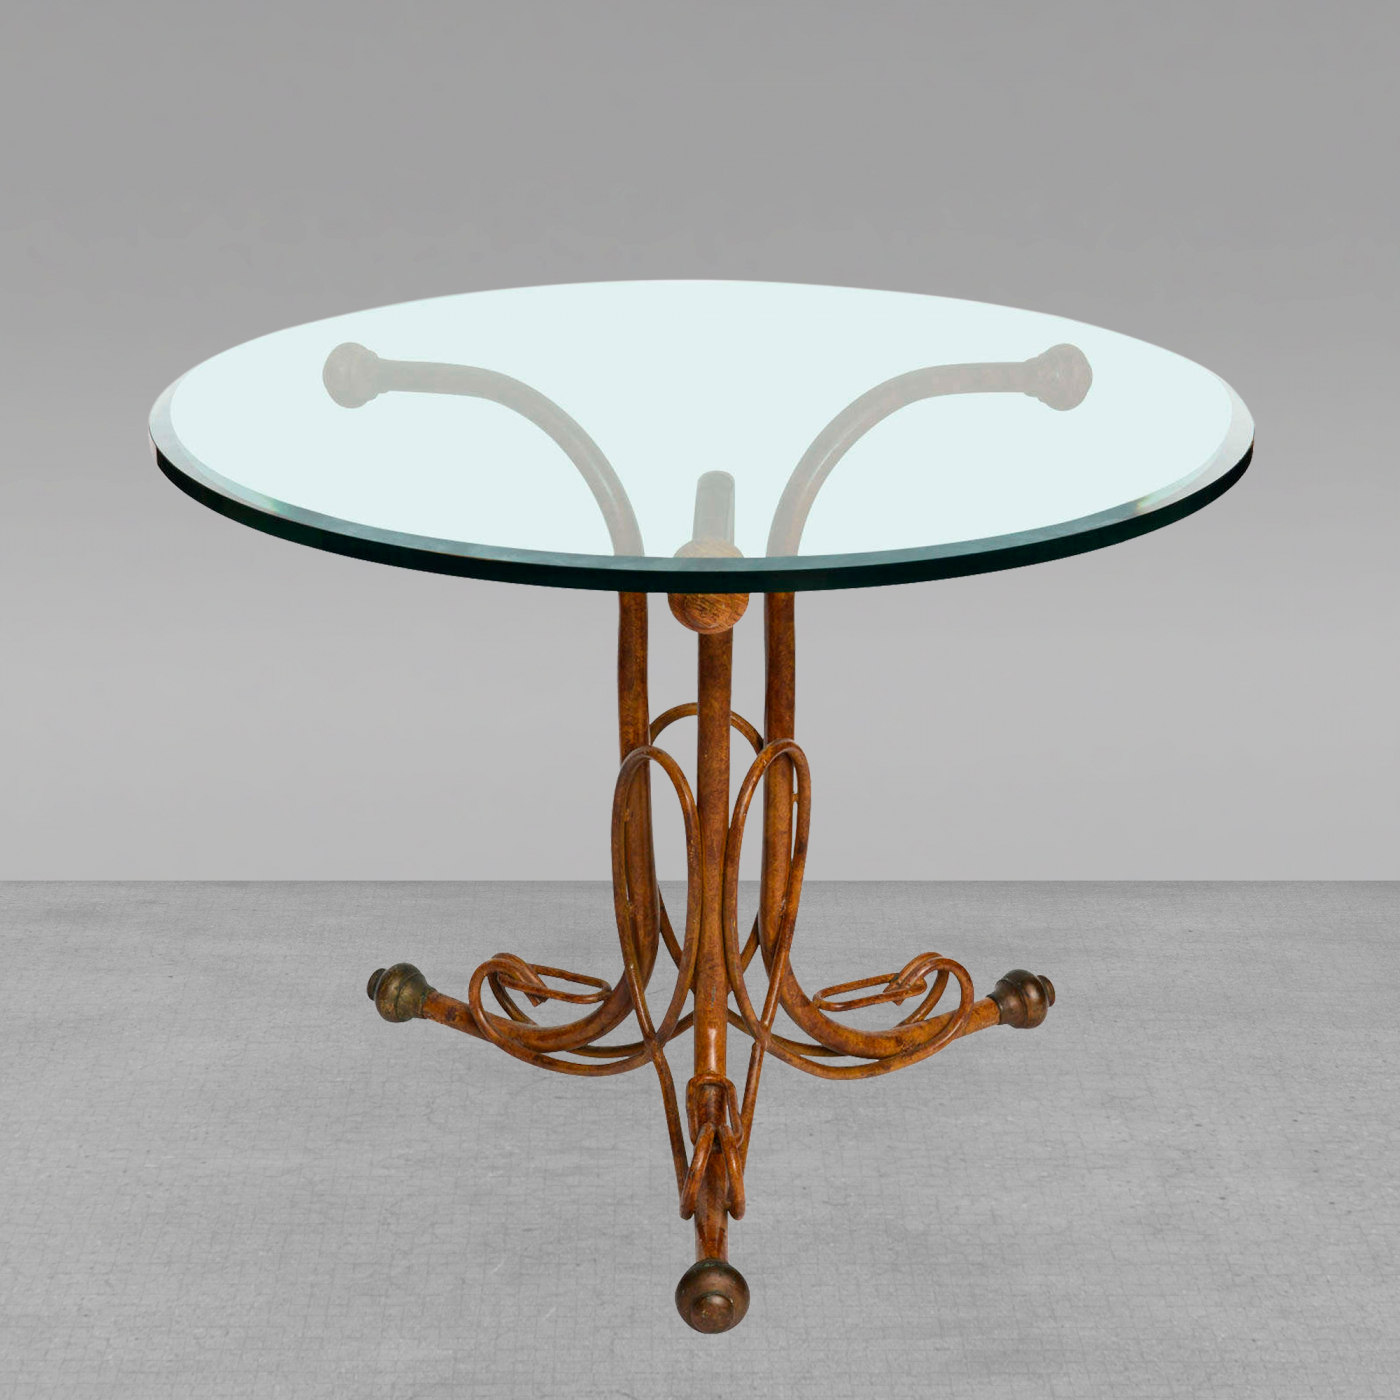 Preferred Faux Bois Coffee Tables Within An Unusual Faux Bois Painted Metal, Glass Top Table Marked Thonet (View 14 of 20)